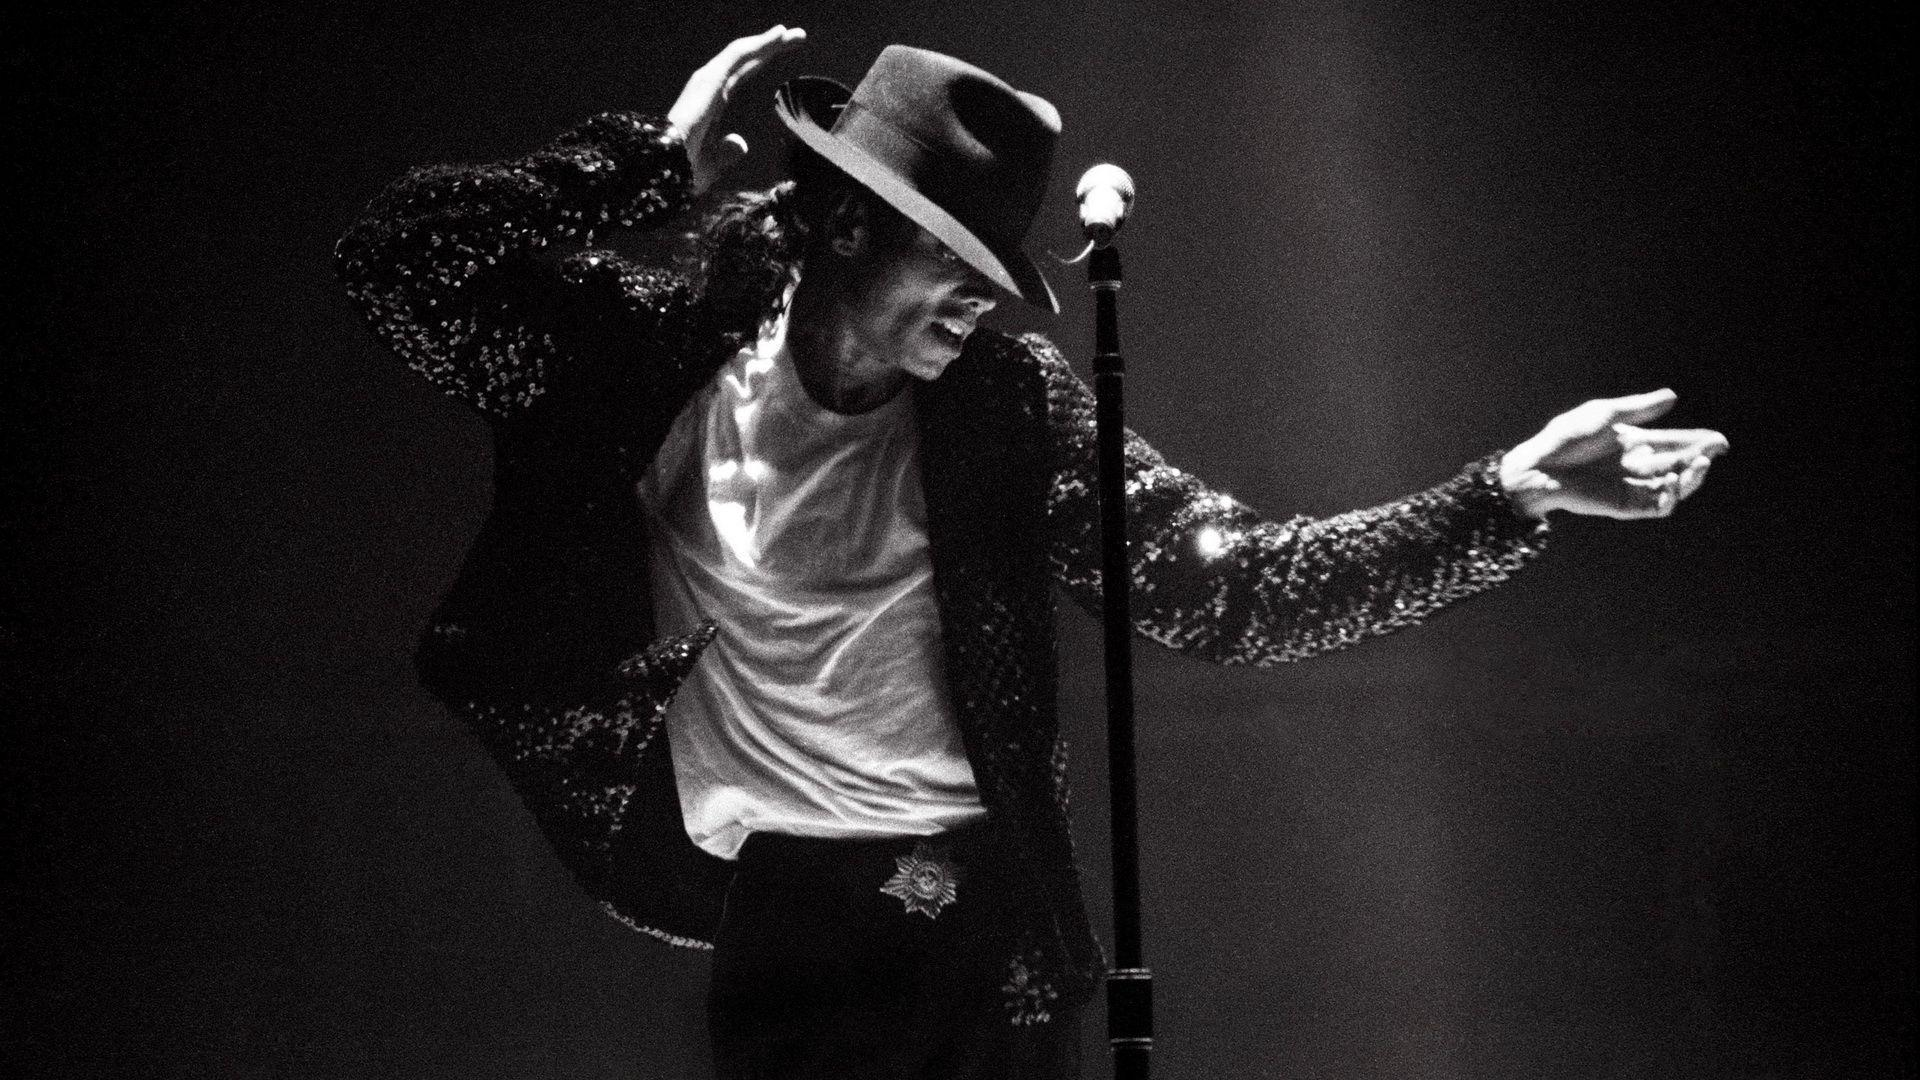 King of Pop Michael Jackson Image 02 | hdwallpapers-